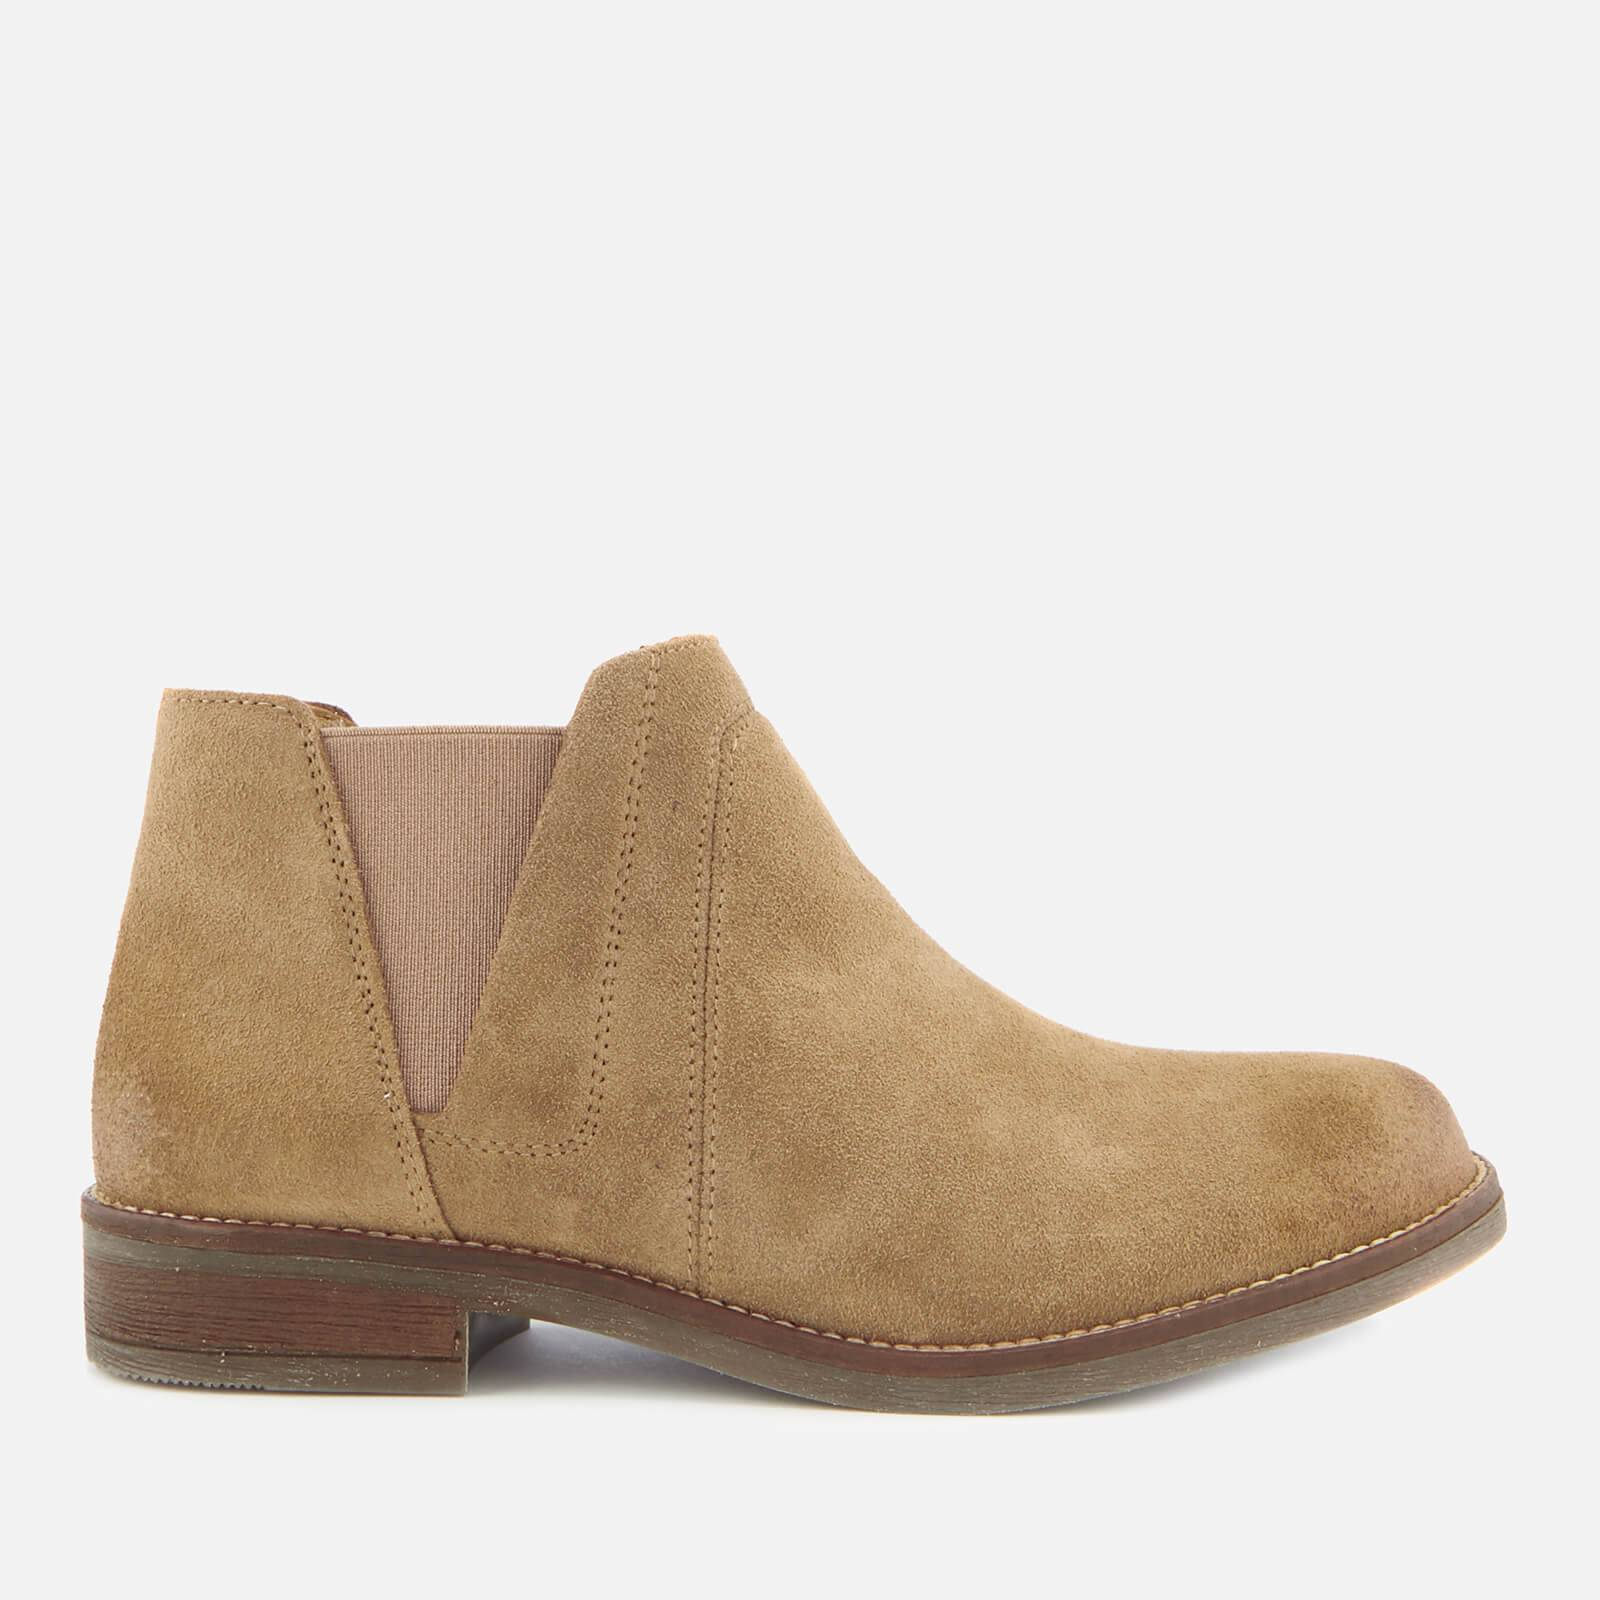 Clarks Women's Demi Beat Suede Ankle Boots - Sand - UK 4 - Beige